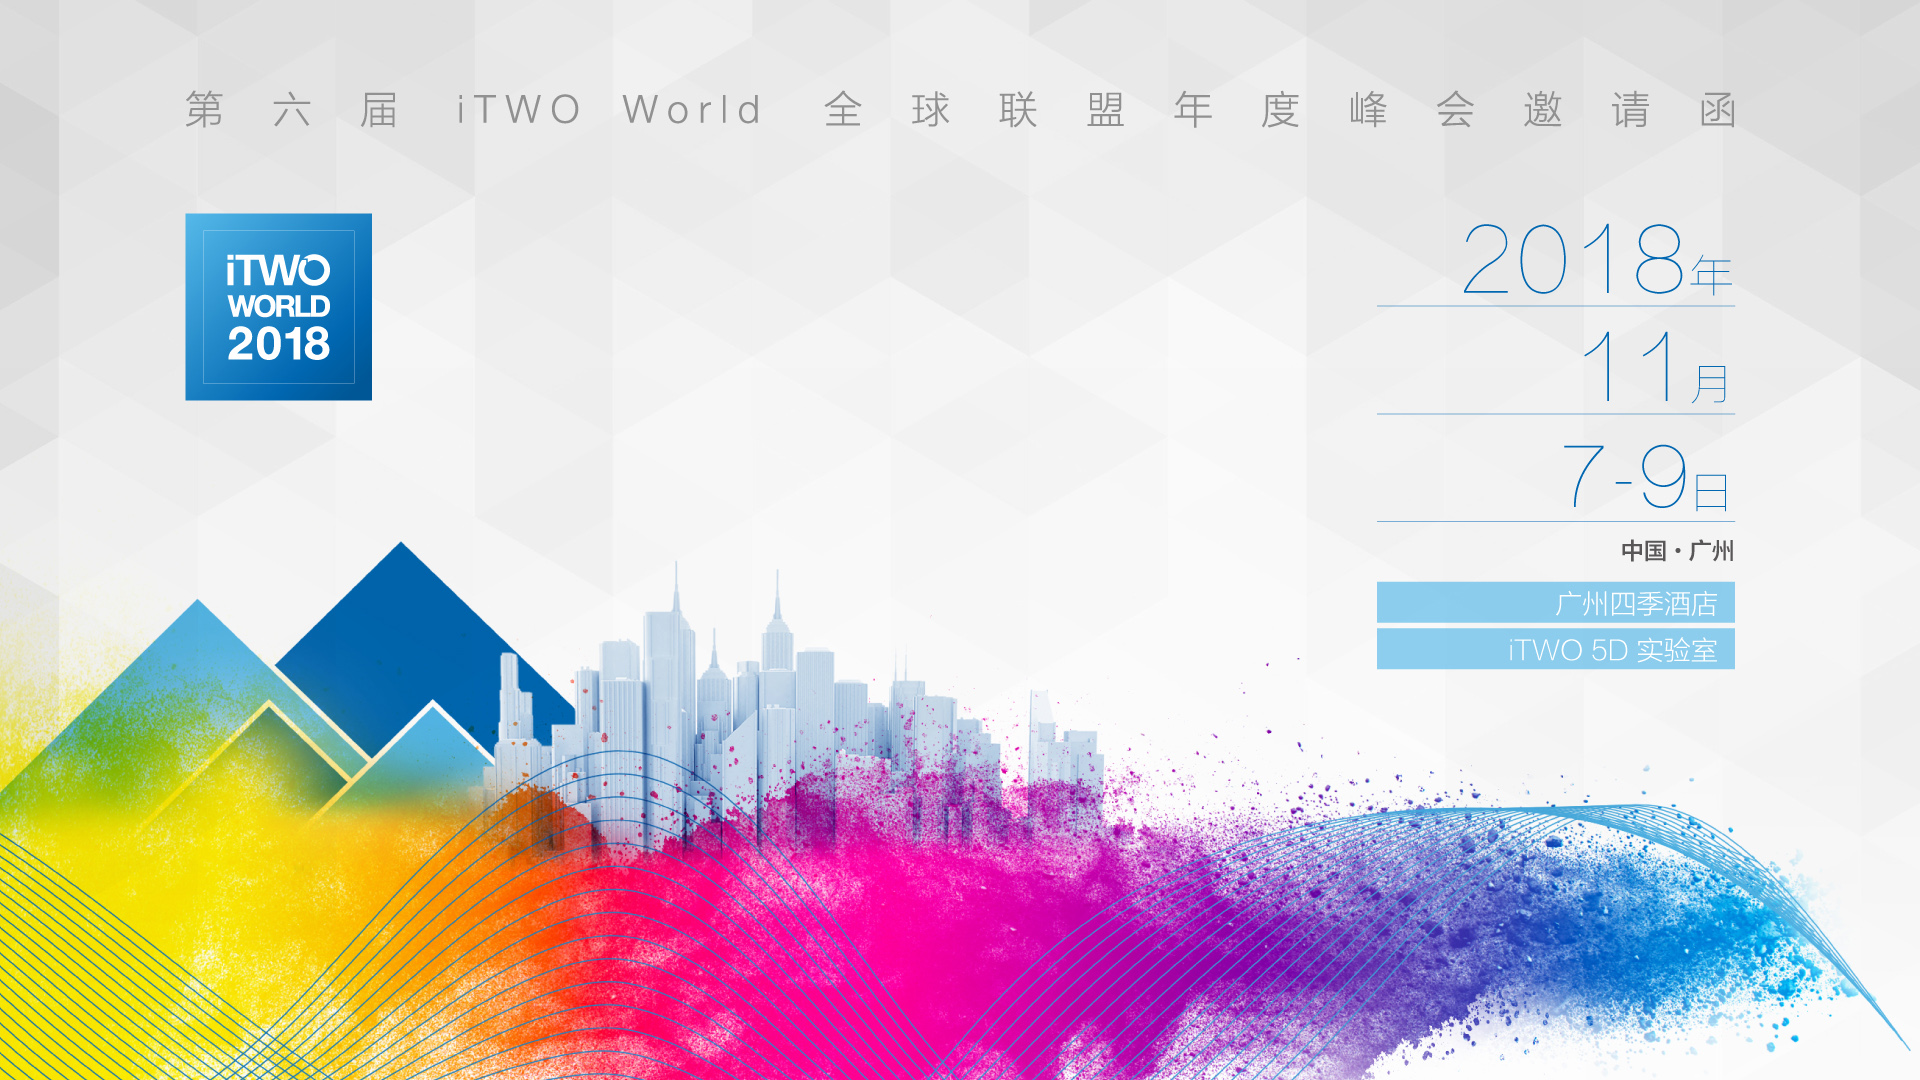 iTWO World 2018 全球峰会